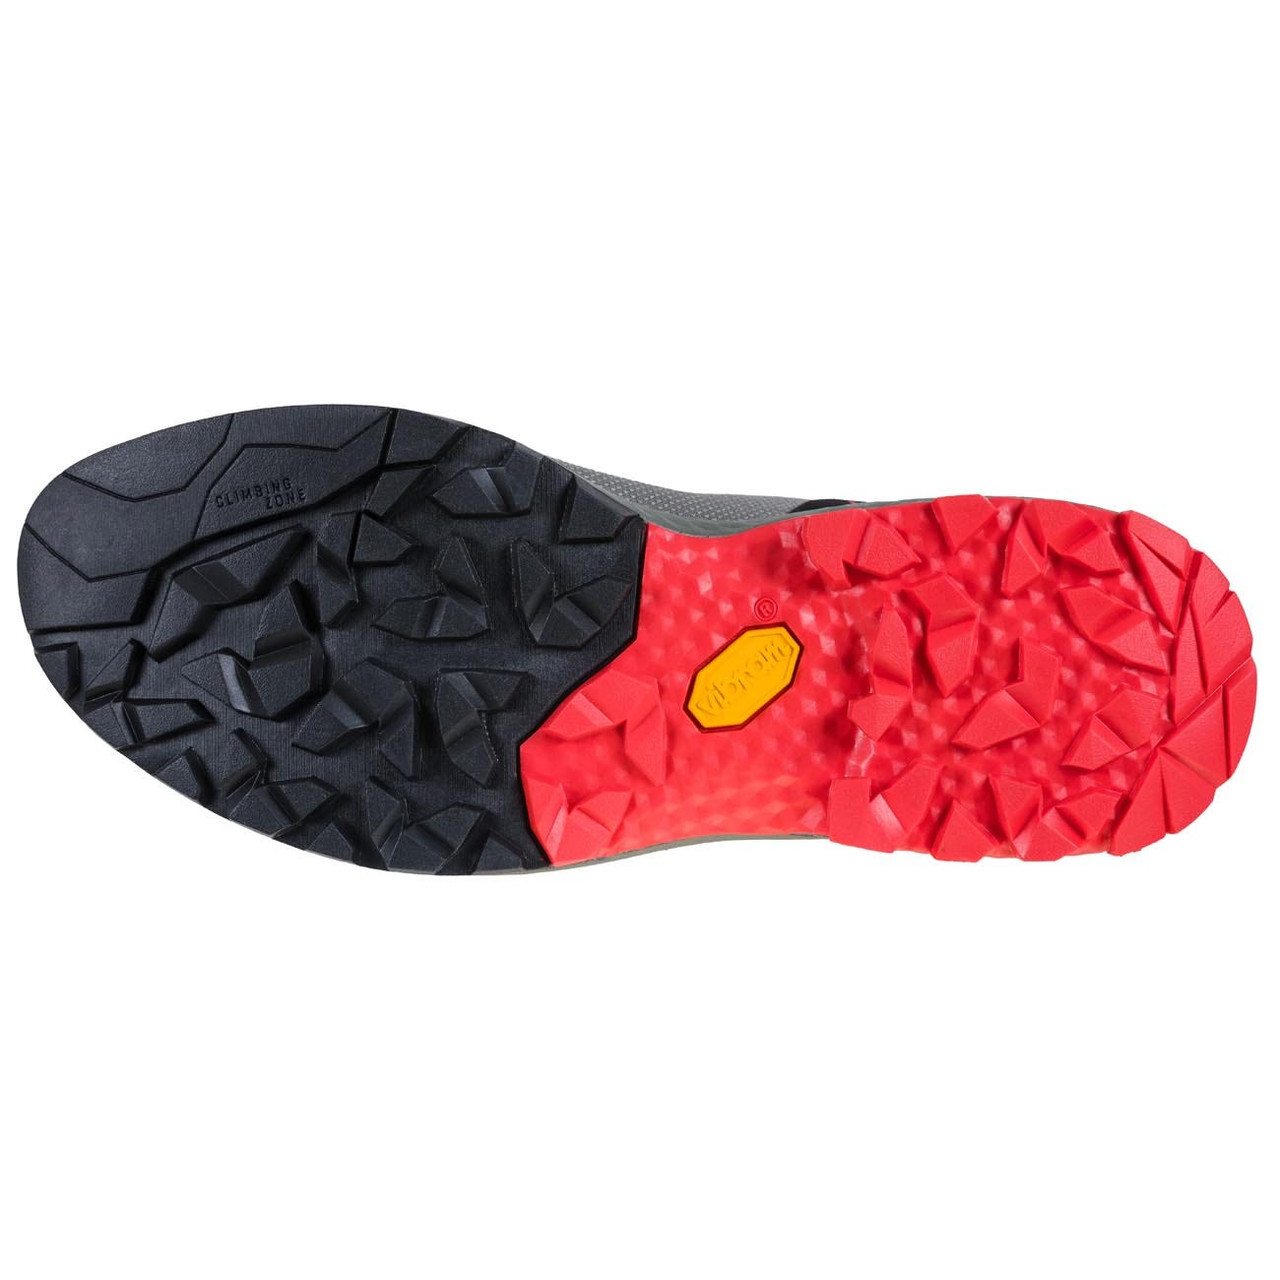 La Sportiva TX Guide - Women's Approach Shoe Bottom Online at Mountain Mail Order South Africa